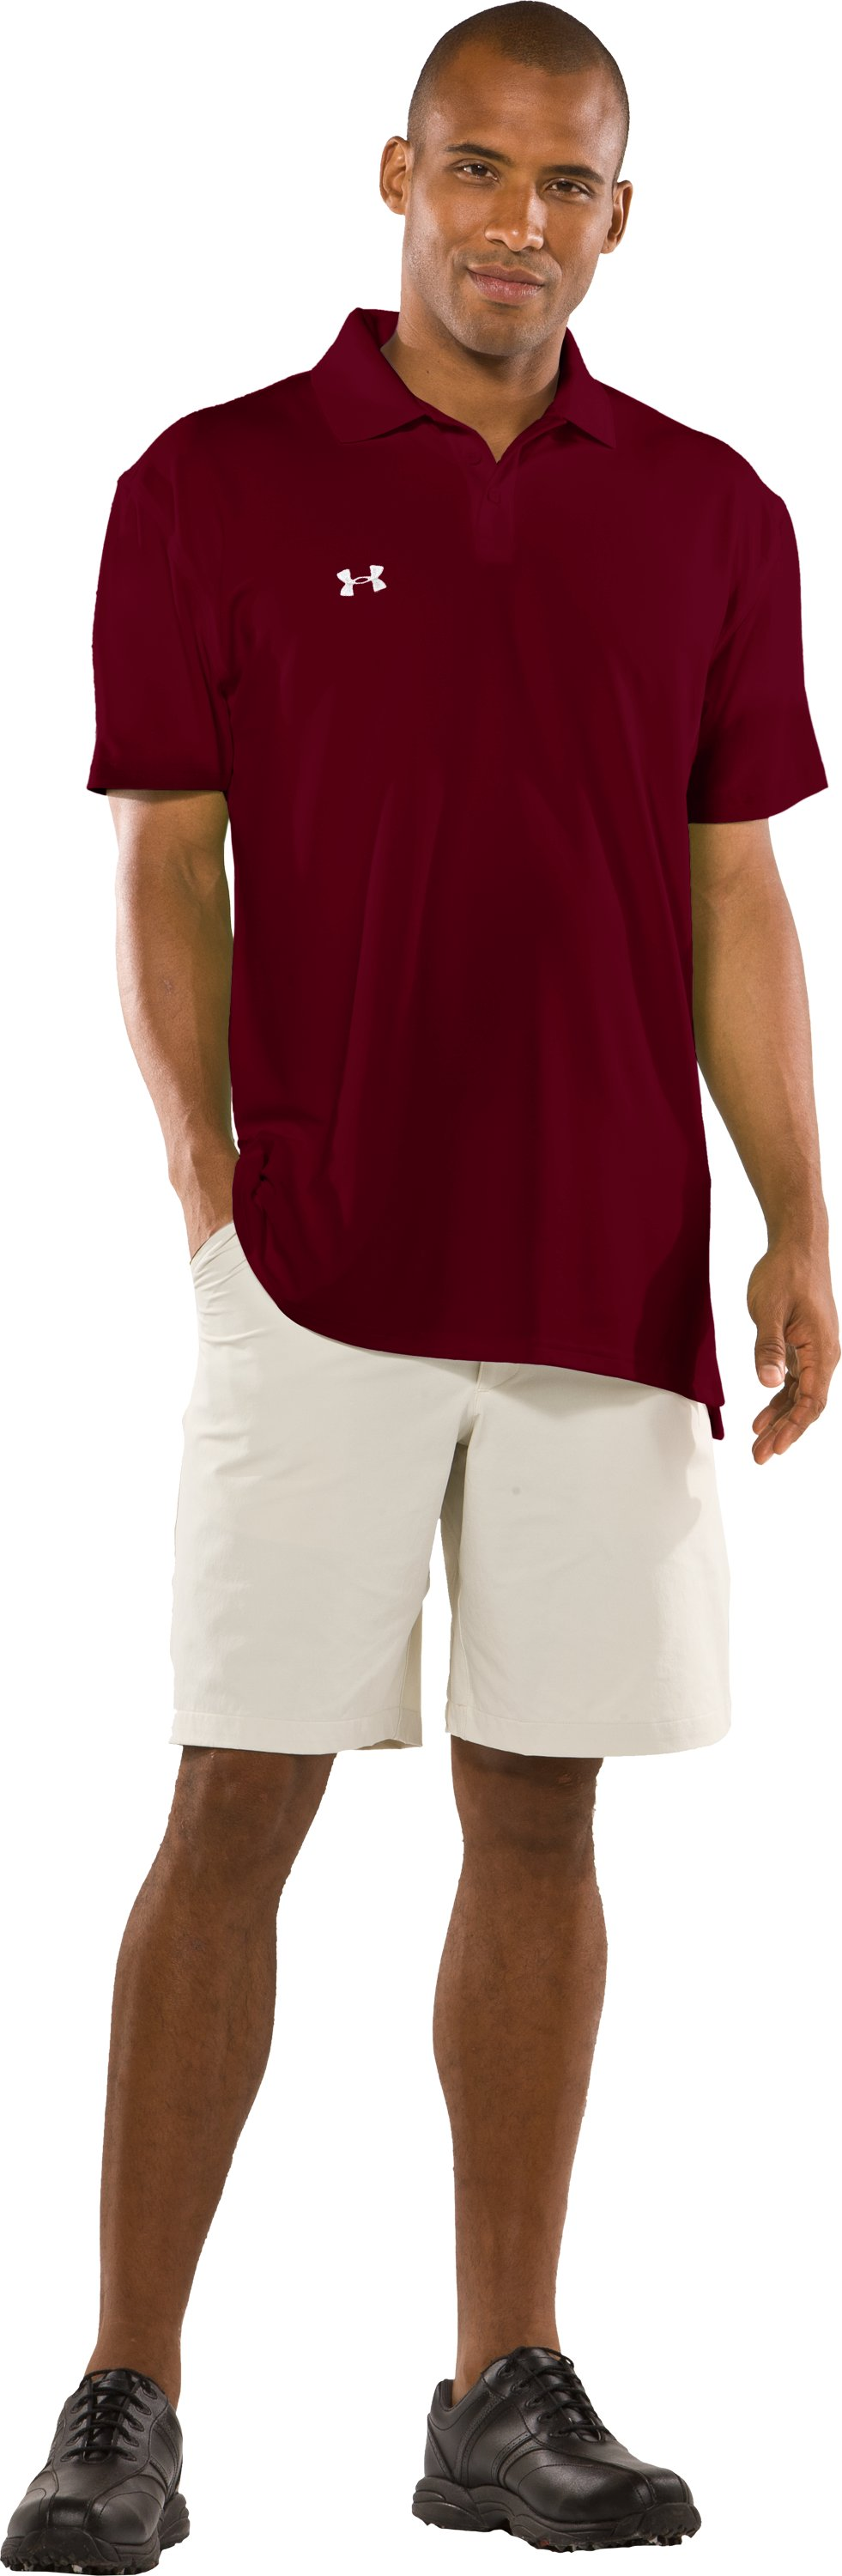 Men's UA Performance Short Sleeve Team Golf Polo, Maroon, Front